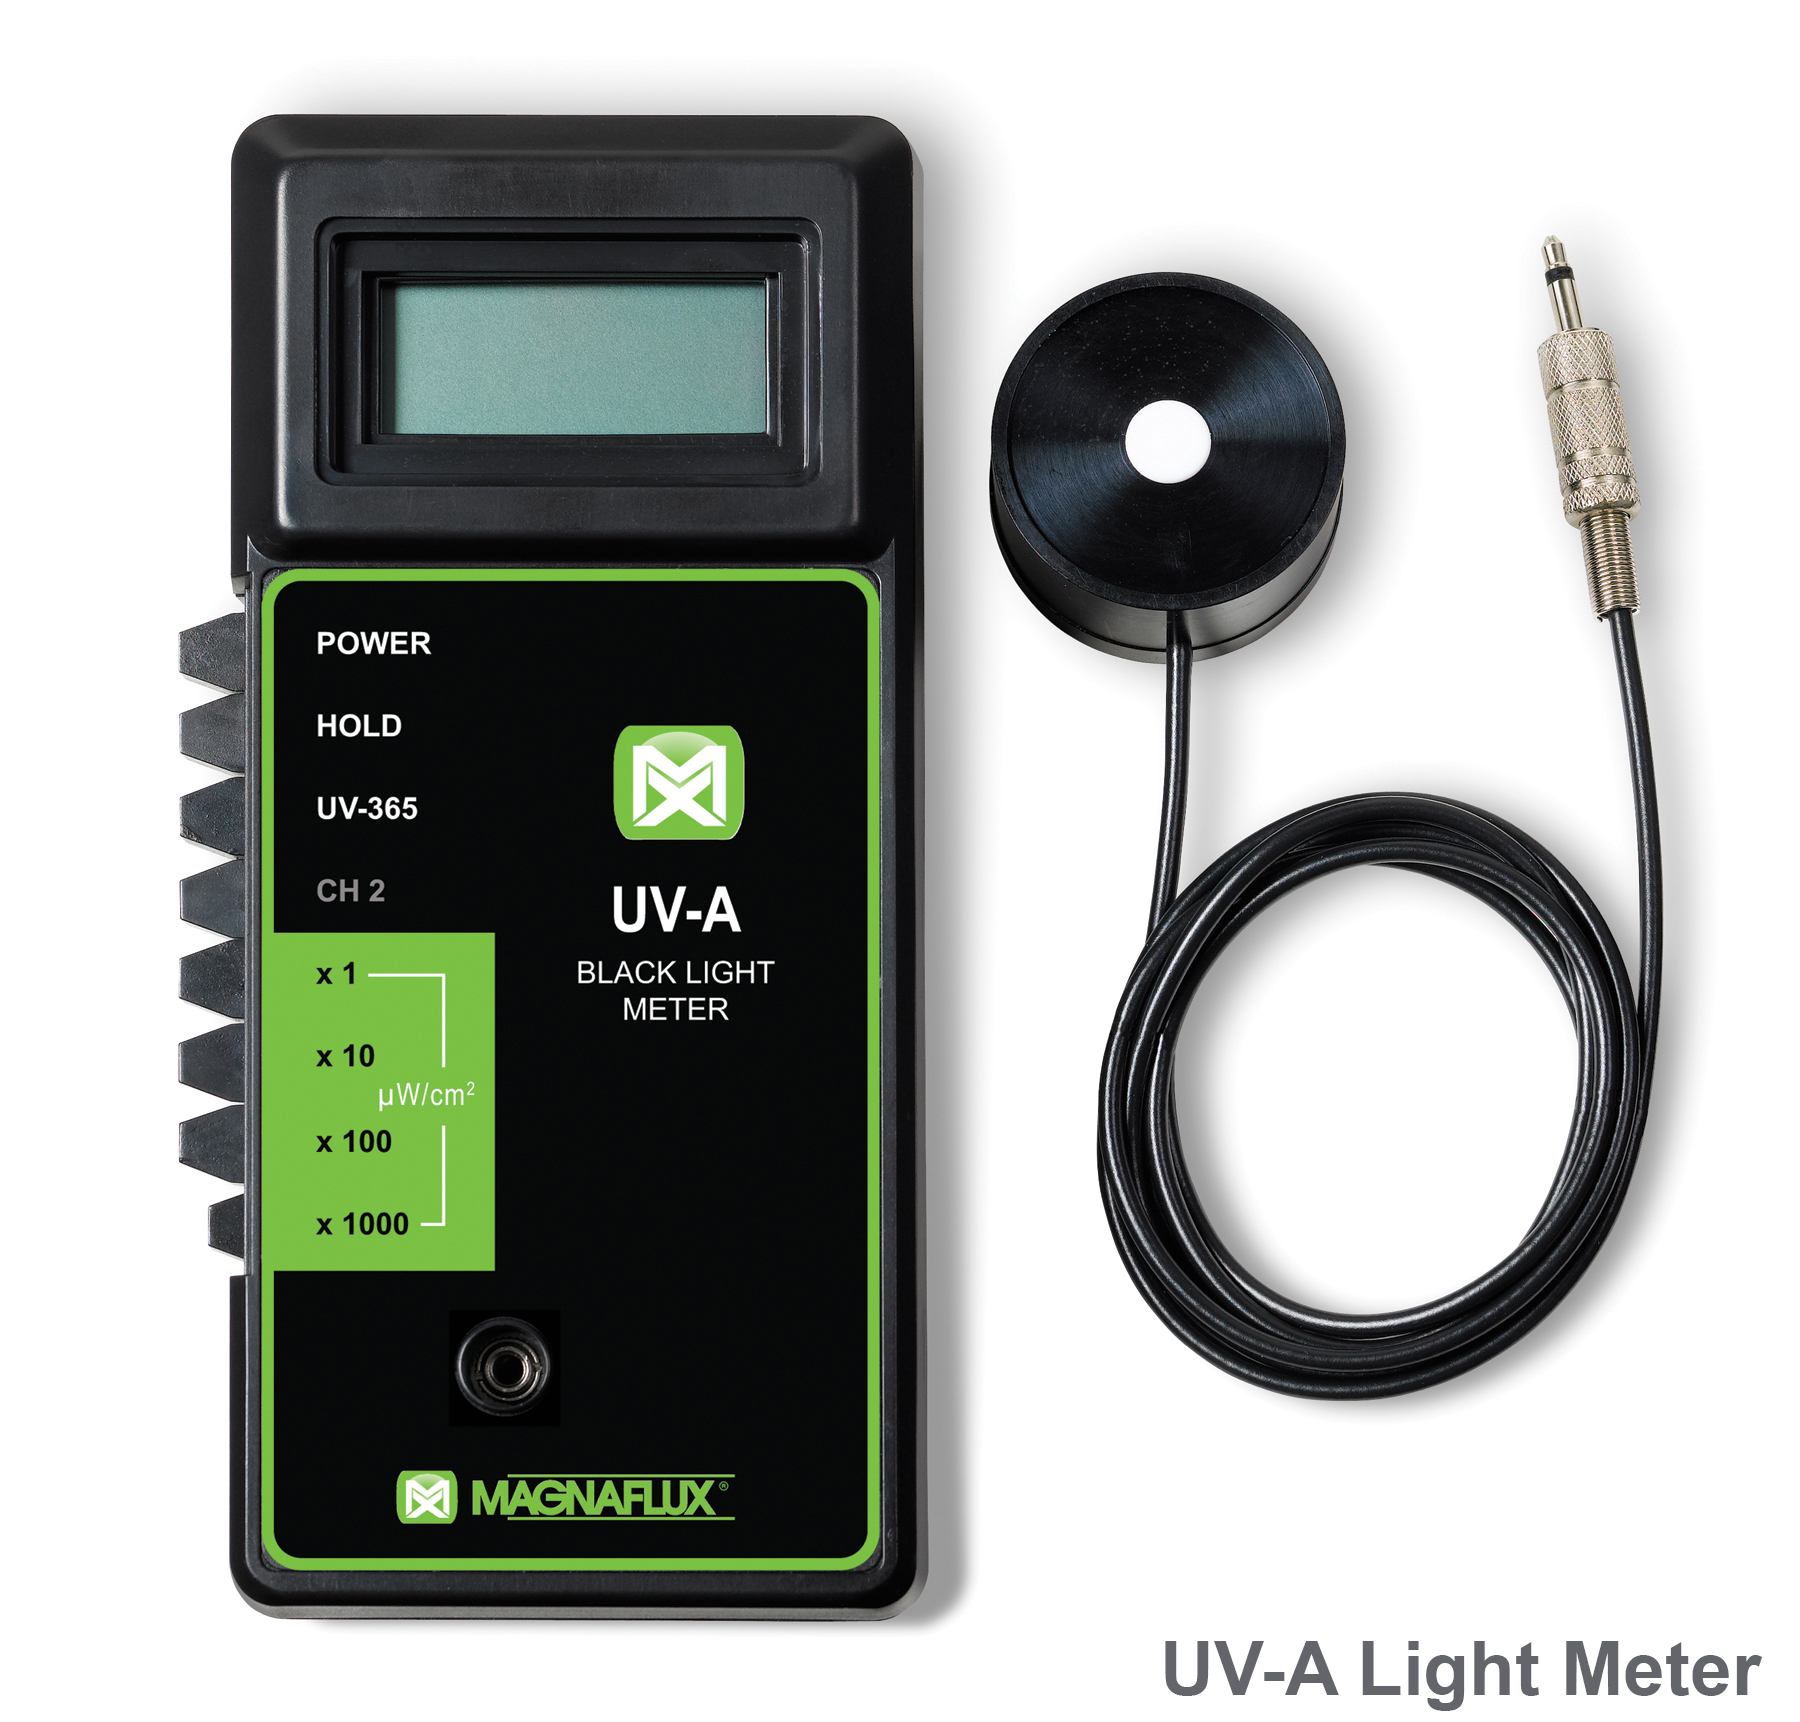 Magnaflux UV-A Light Meter - IR Supplies and Services